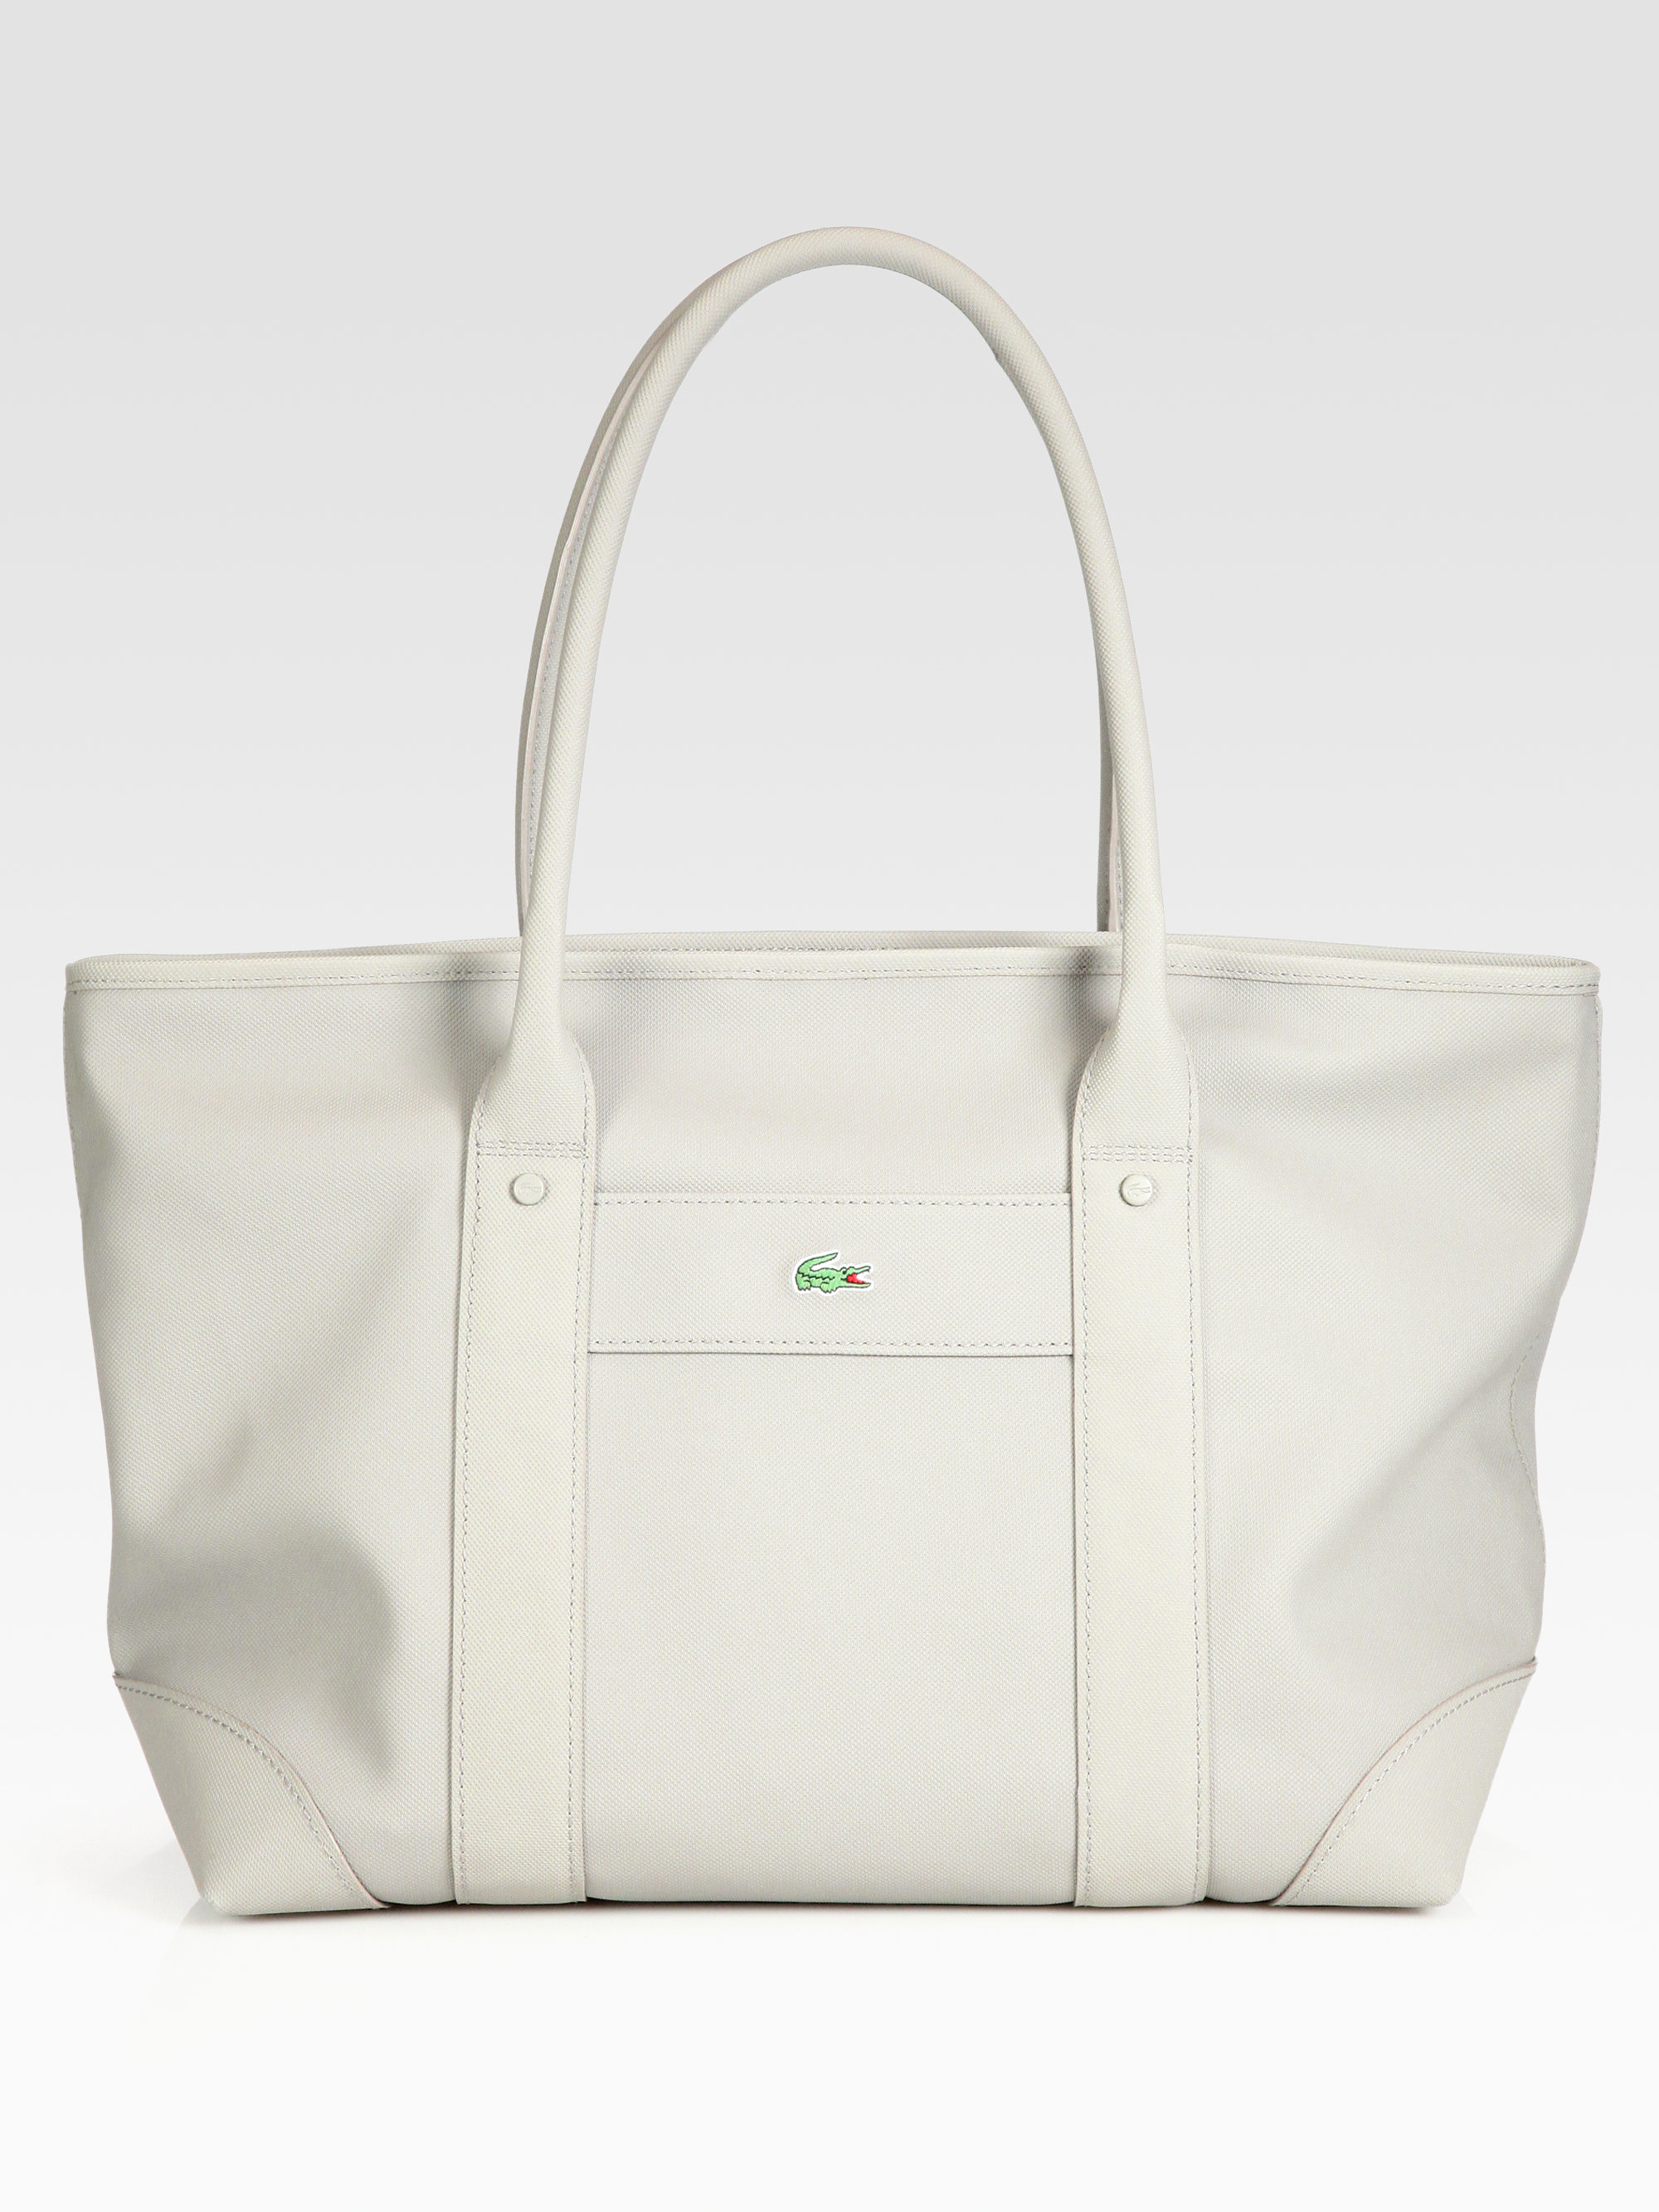 897fa0eb3dbb Lyst - Lacoste Classic Shopping Bag in White